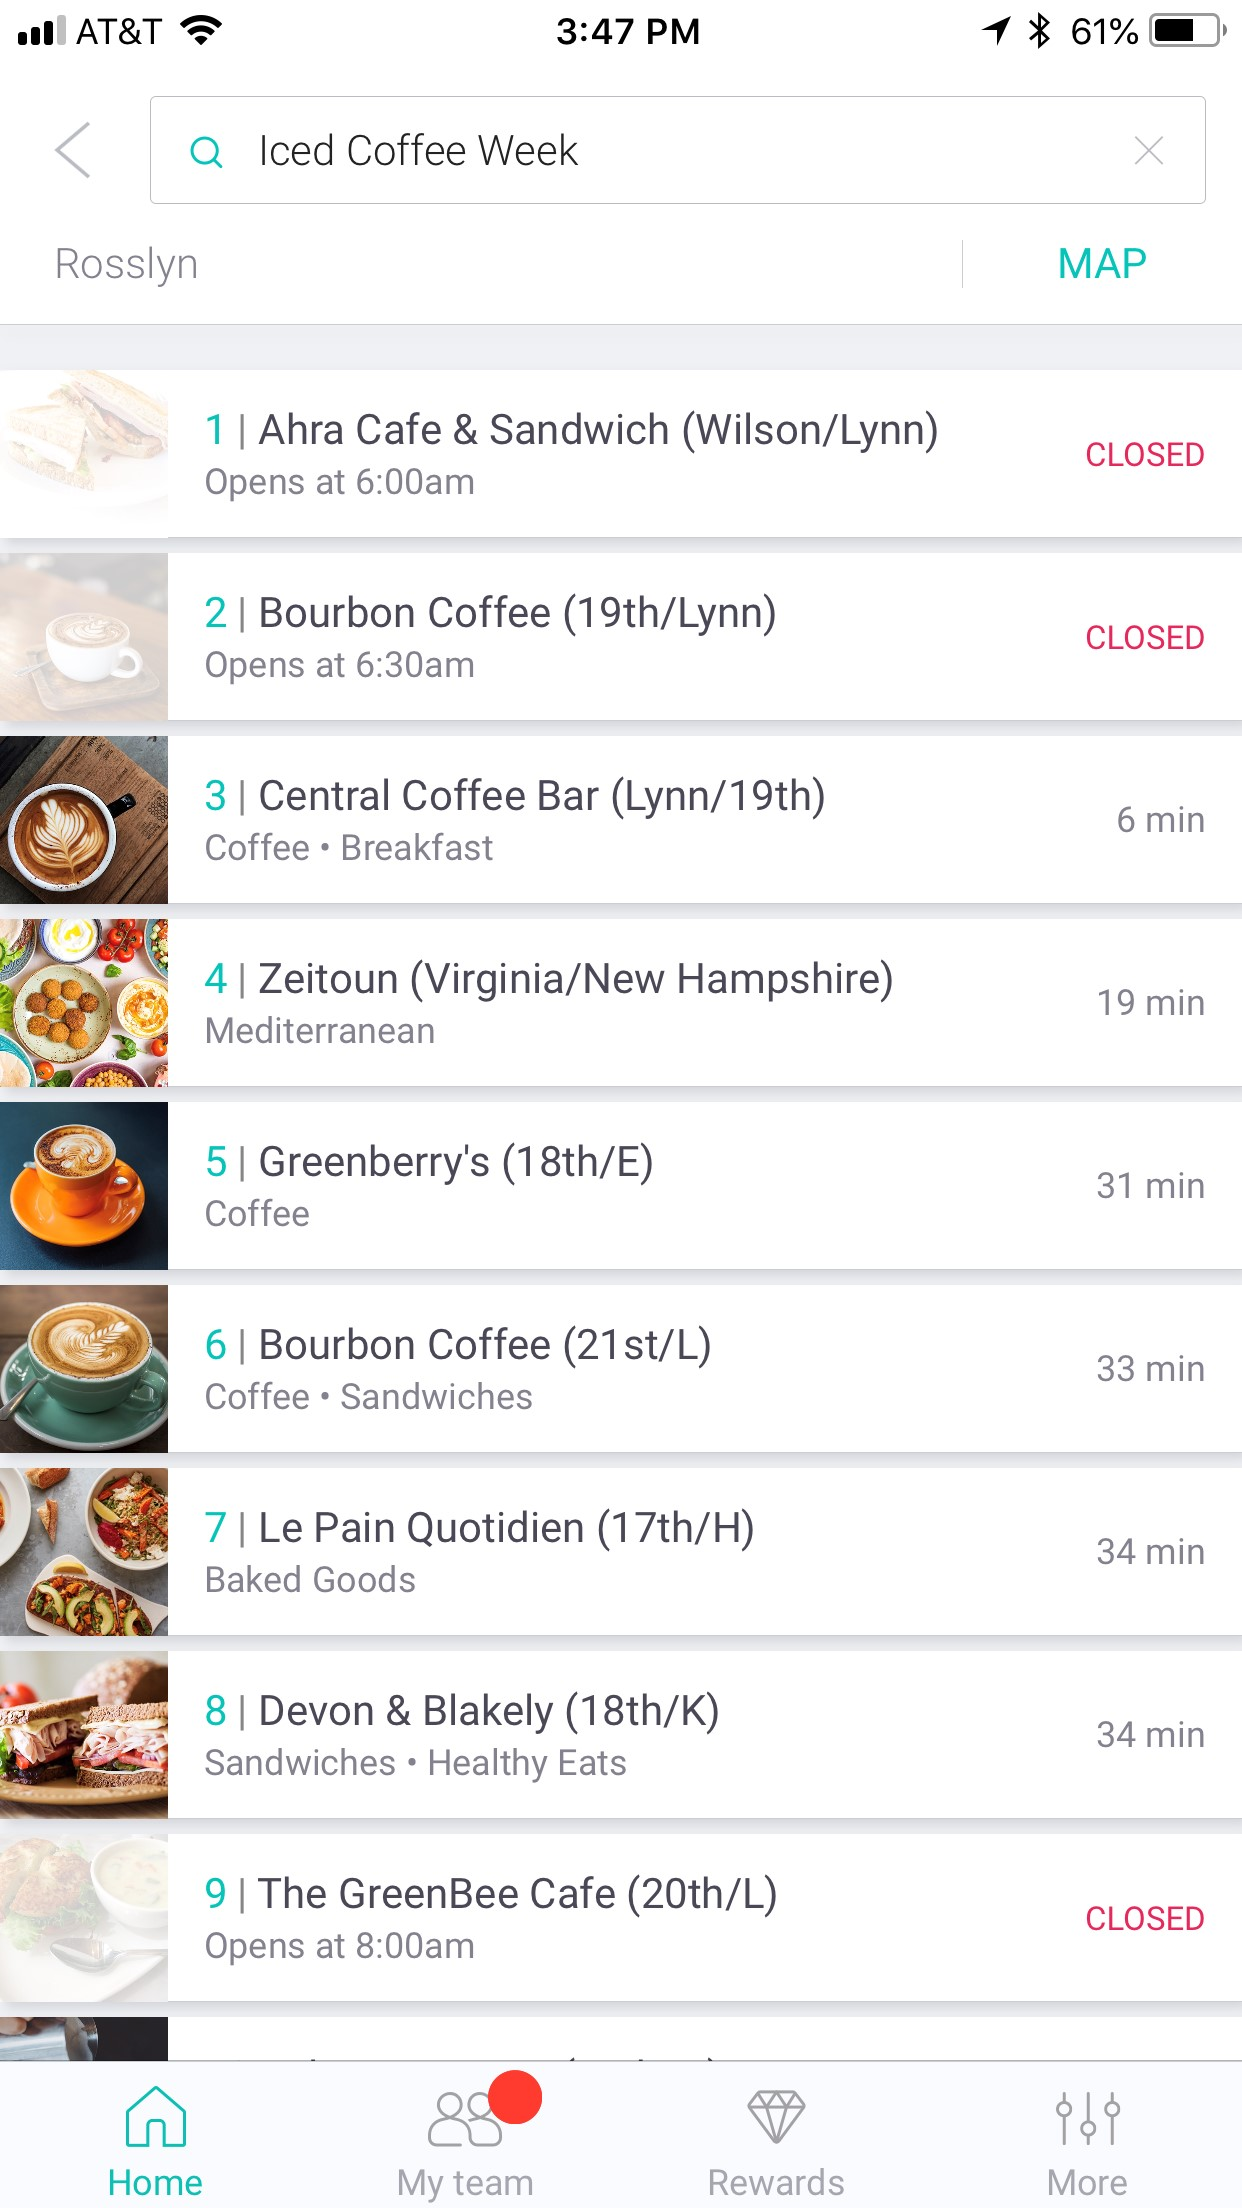 Login and search 'Iced Coffee Week&quot; to see the participants and choose a location. Once you check out, the app will tell you when your order is ready for pick up. (Image: Screenshot by Laura Wainman)<p></p>